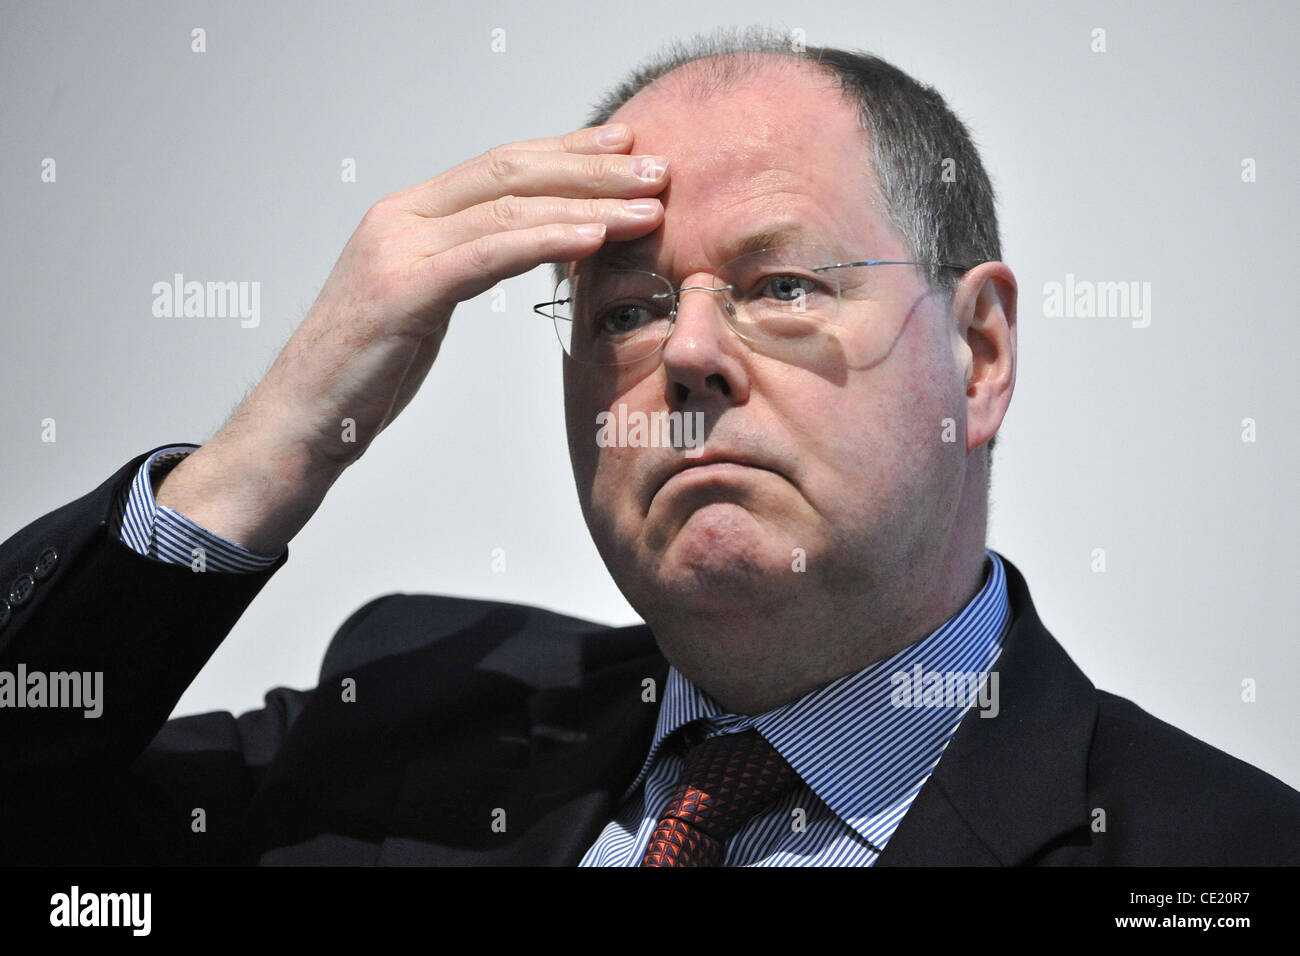 Peer Steinbrueck reads from his book 'Unterm Strich' at 'Boerse' at Messe Dresden. Dresden, Germany - Stock Image